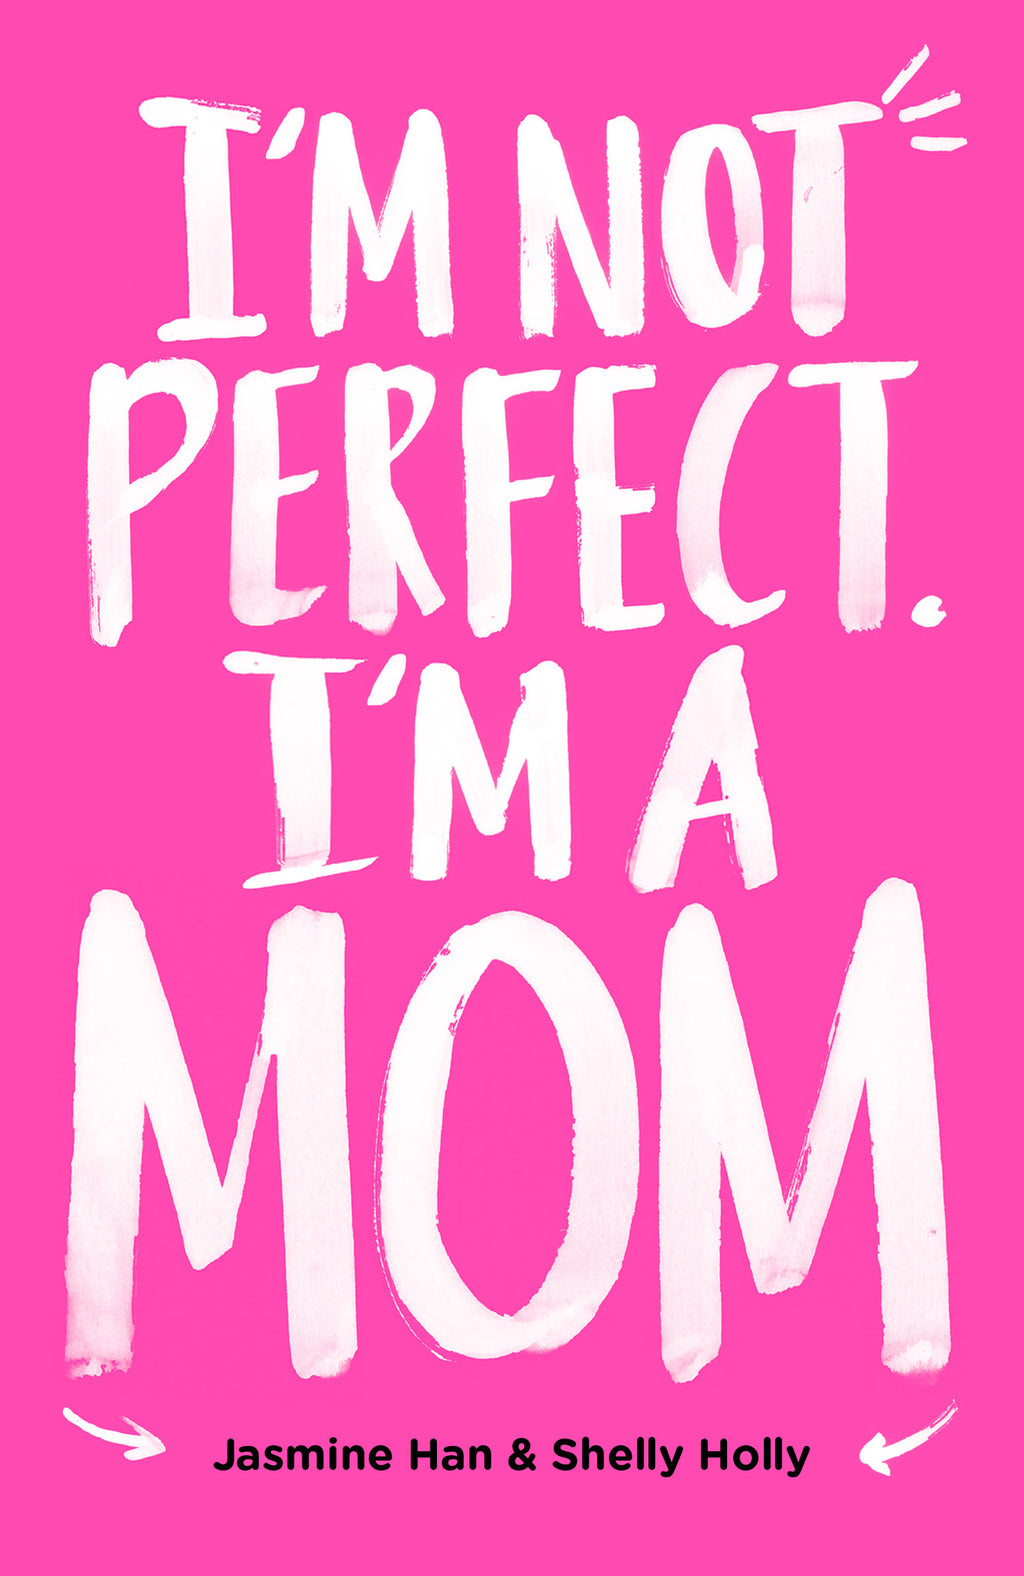 I'm Not Perfect. I'm a Mom.